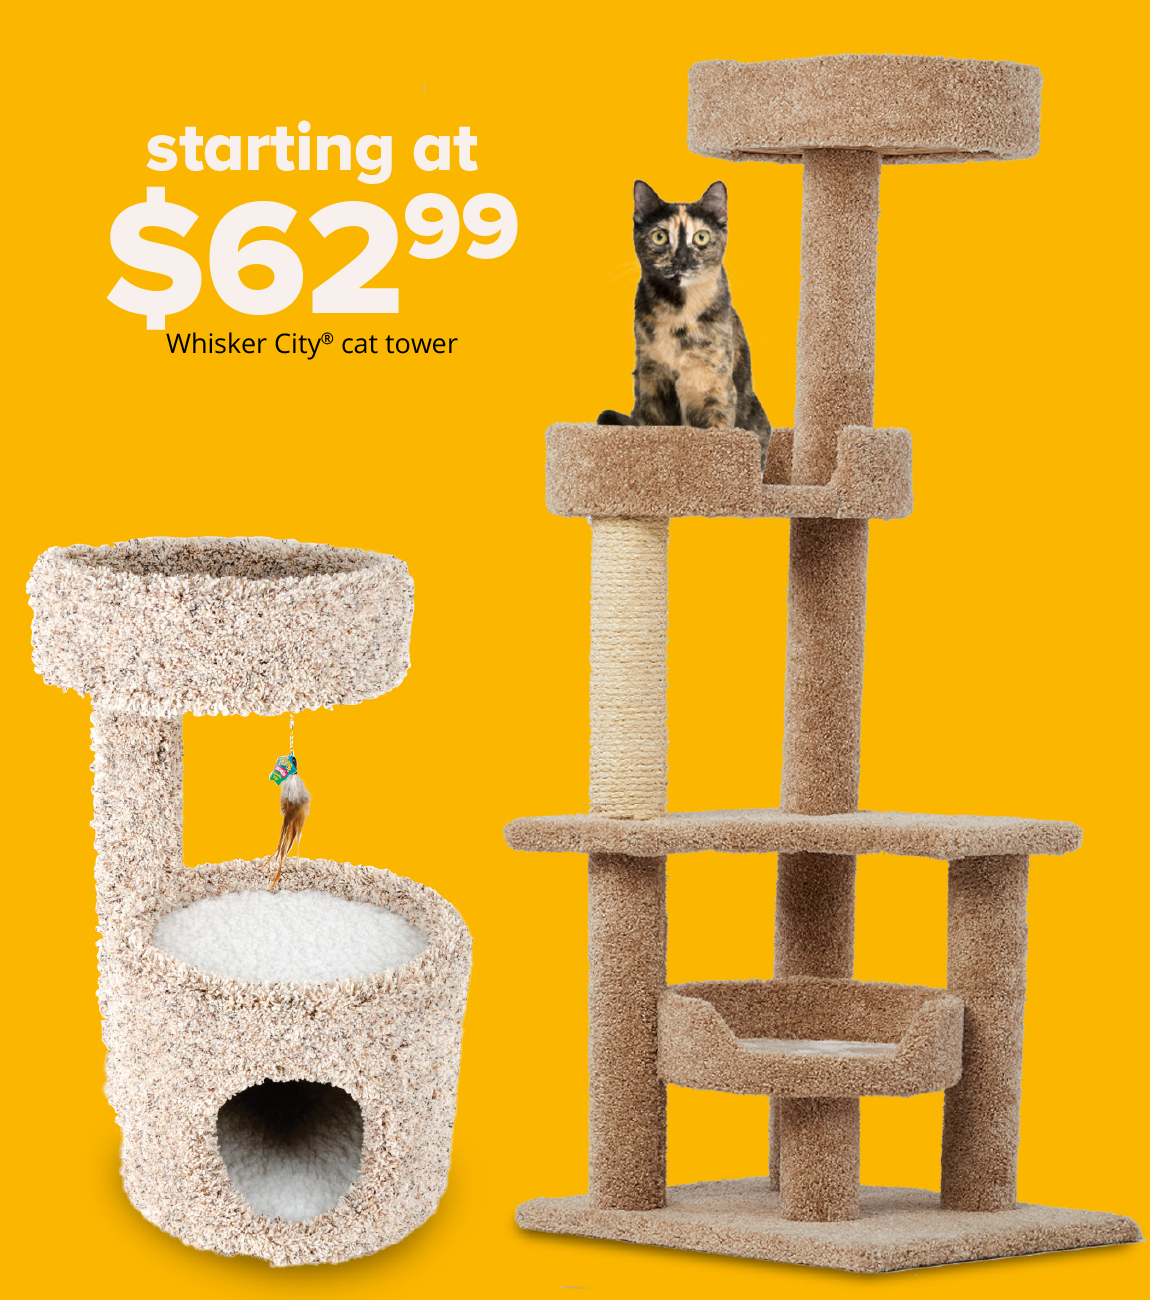 starting at $62.99 Whisker City® cat tower